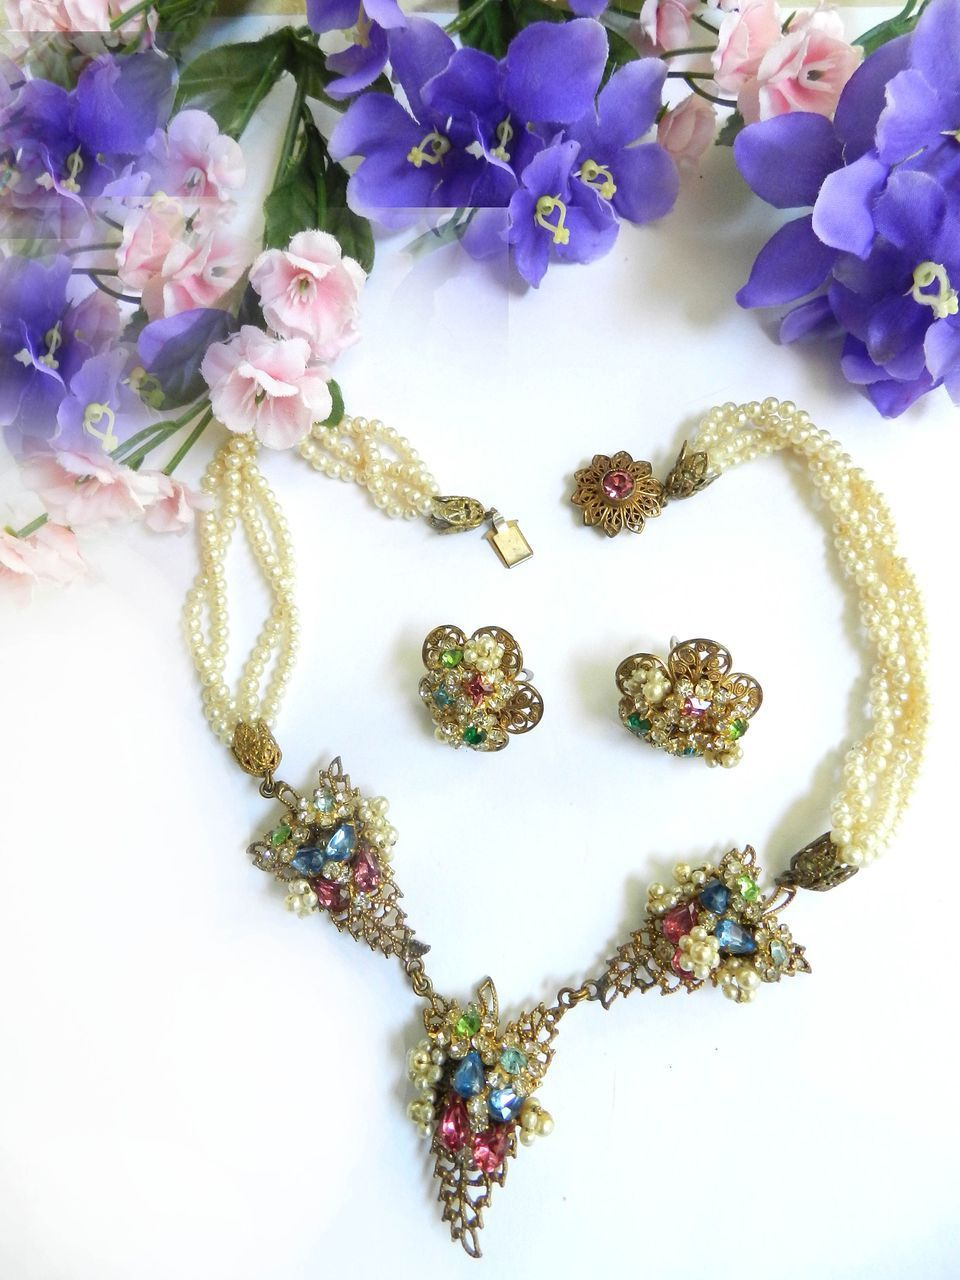 fabulous Robert Vintage faux Pearl and Rhinestone Necklace and Earrings